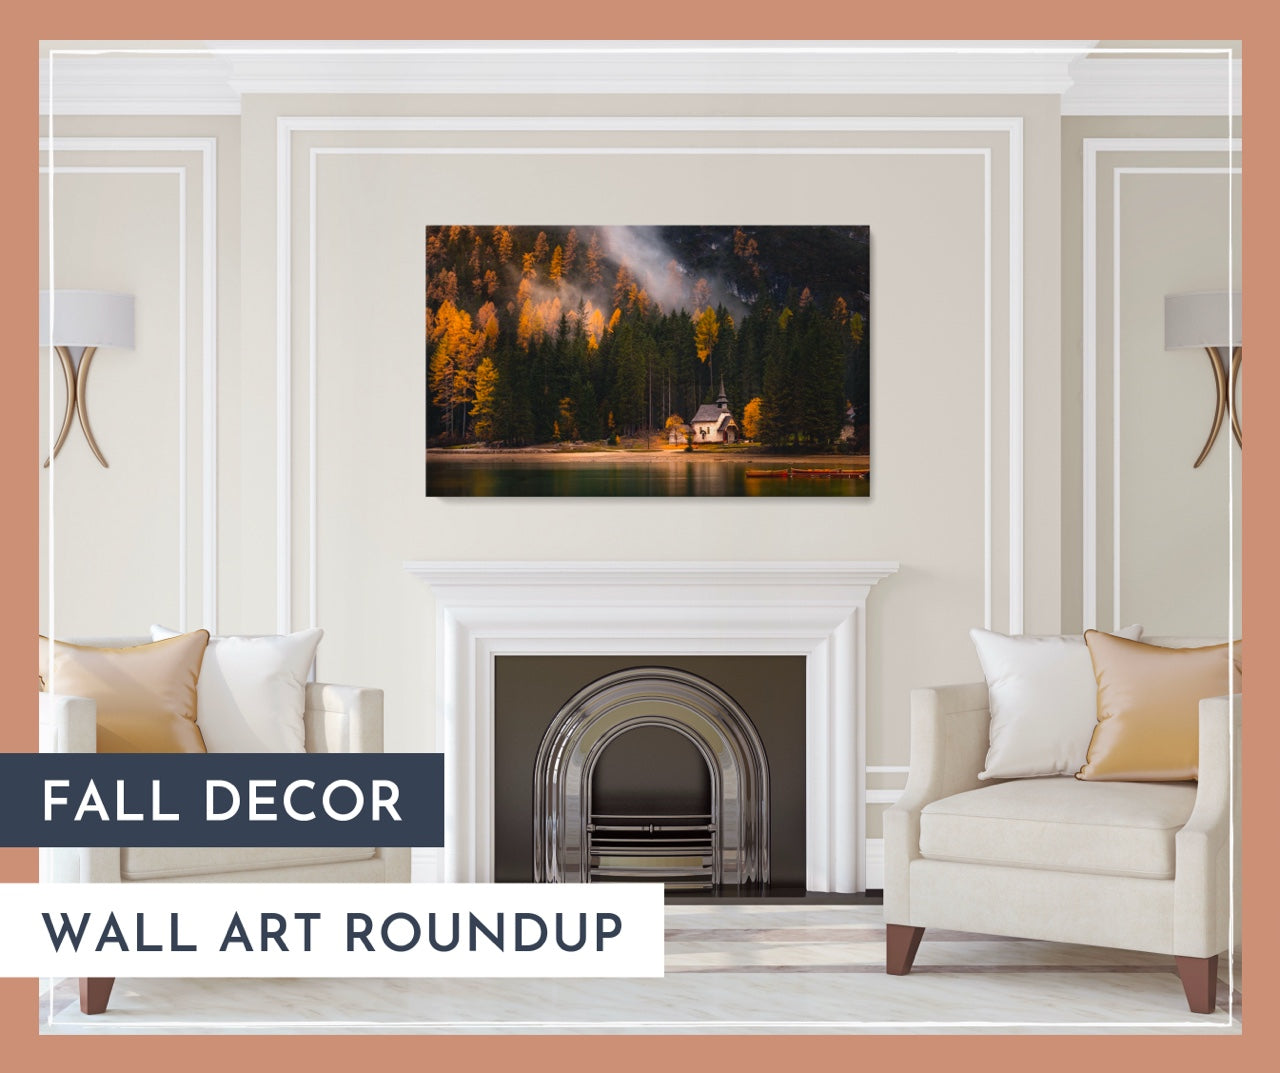 Fall Decor: Wall Art Roundup